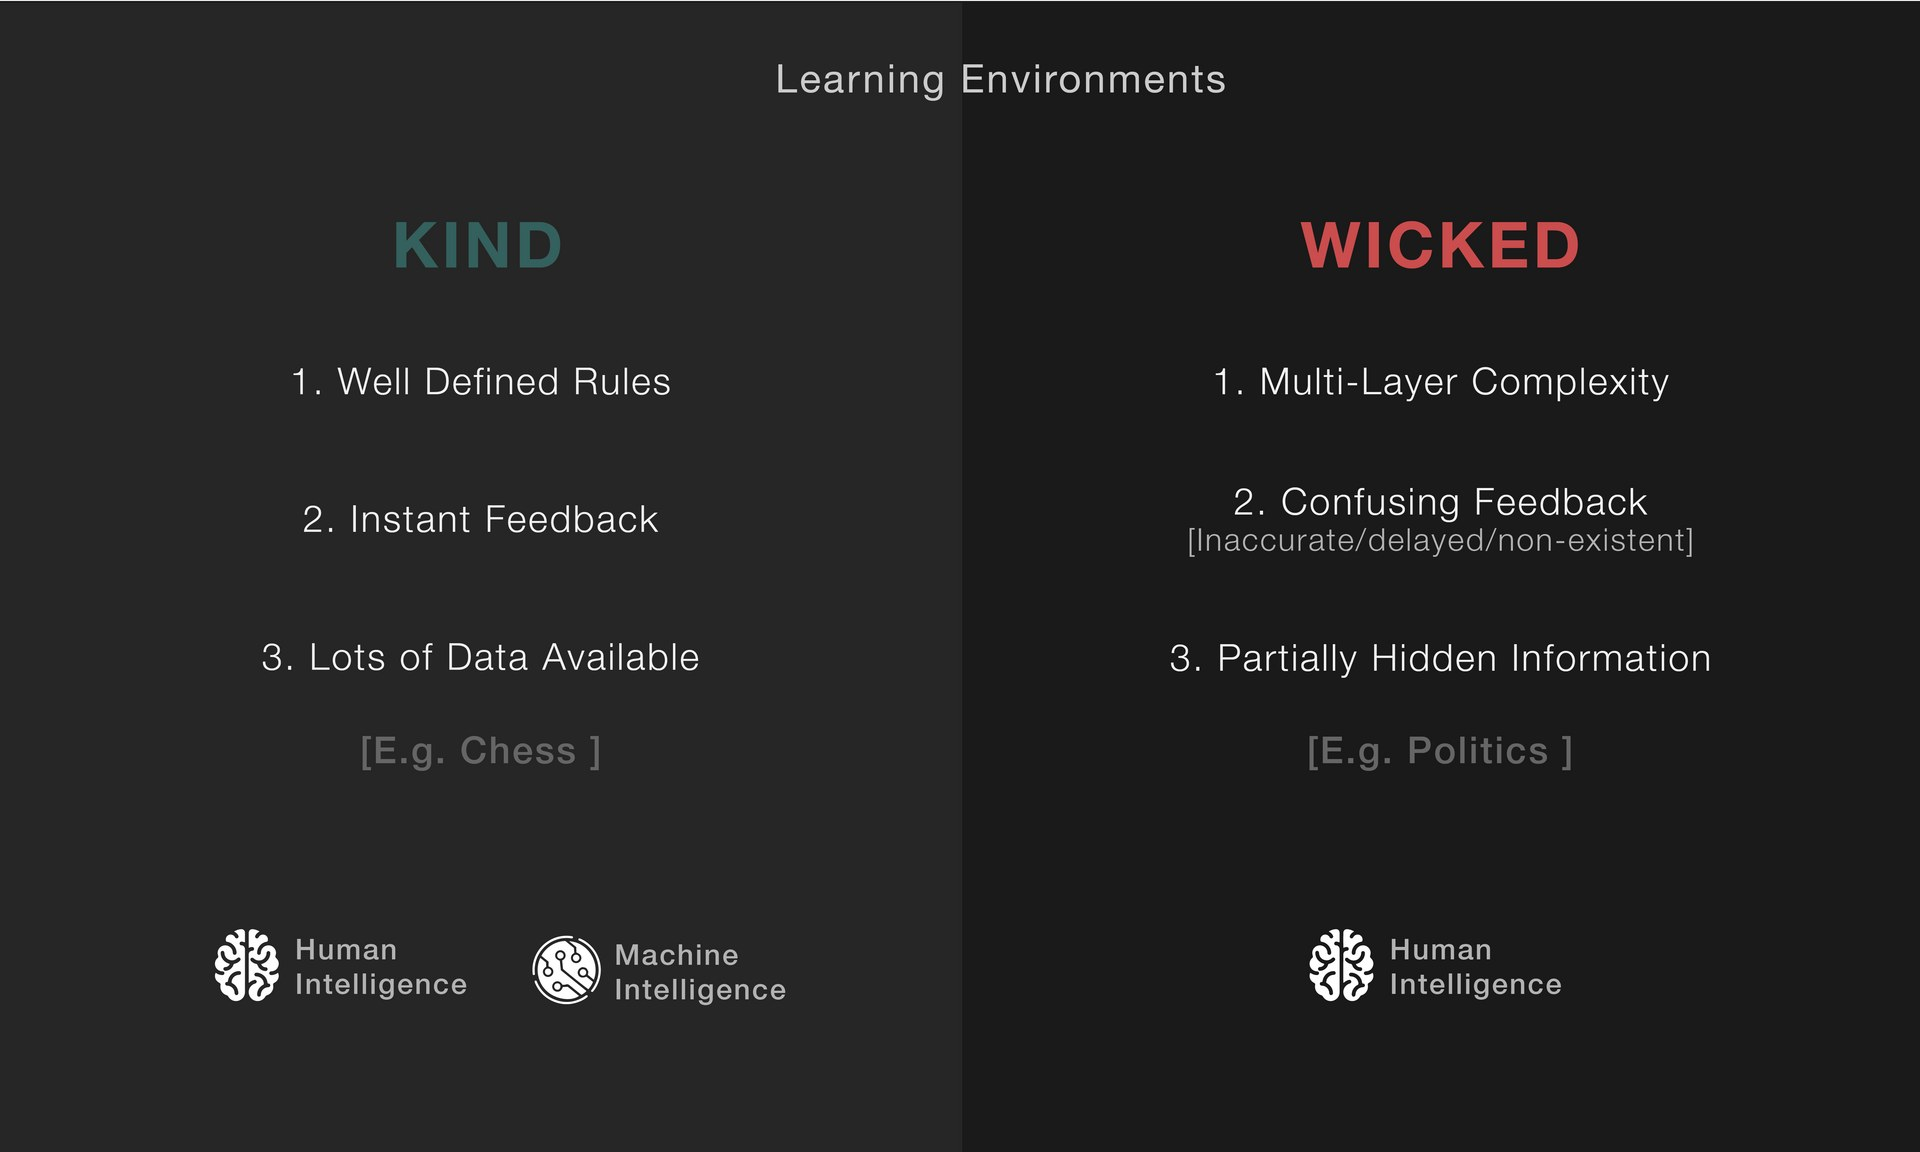 There are two kinds of learning environments that intelligence performs: Kind and Wicked.